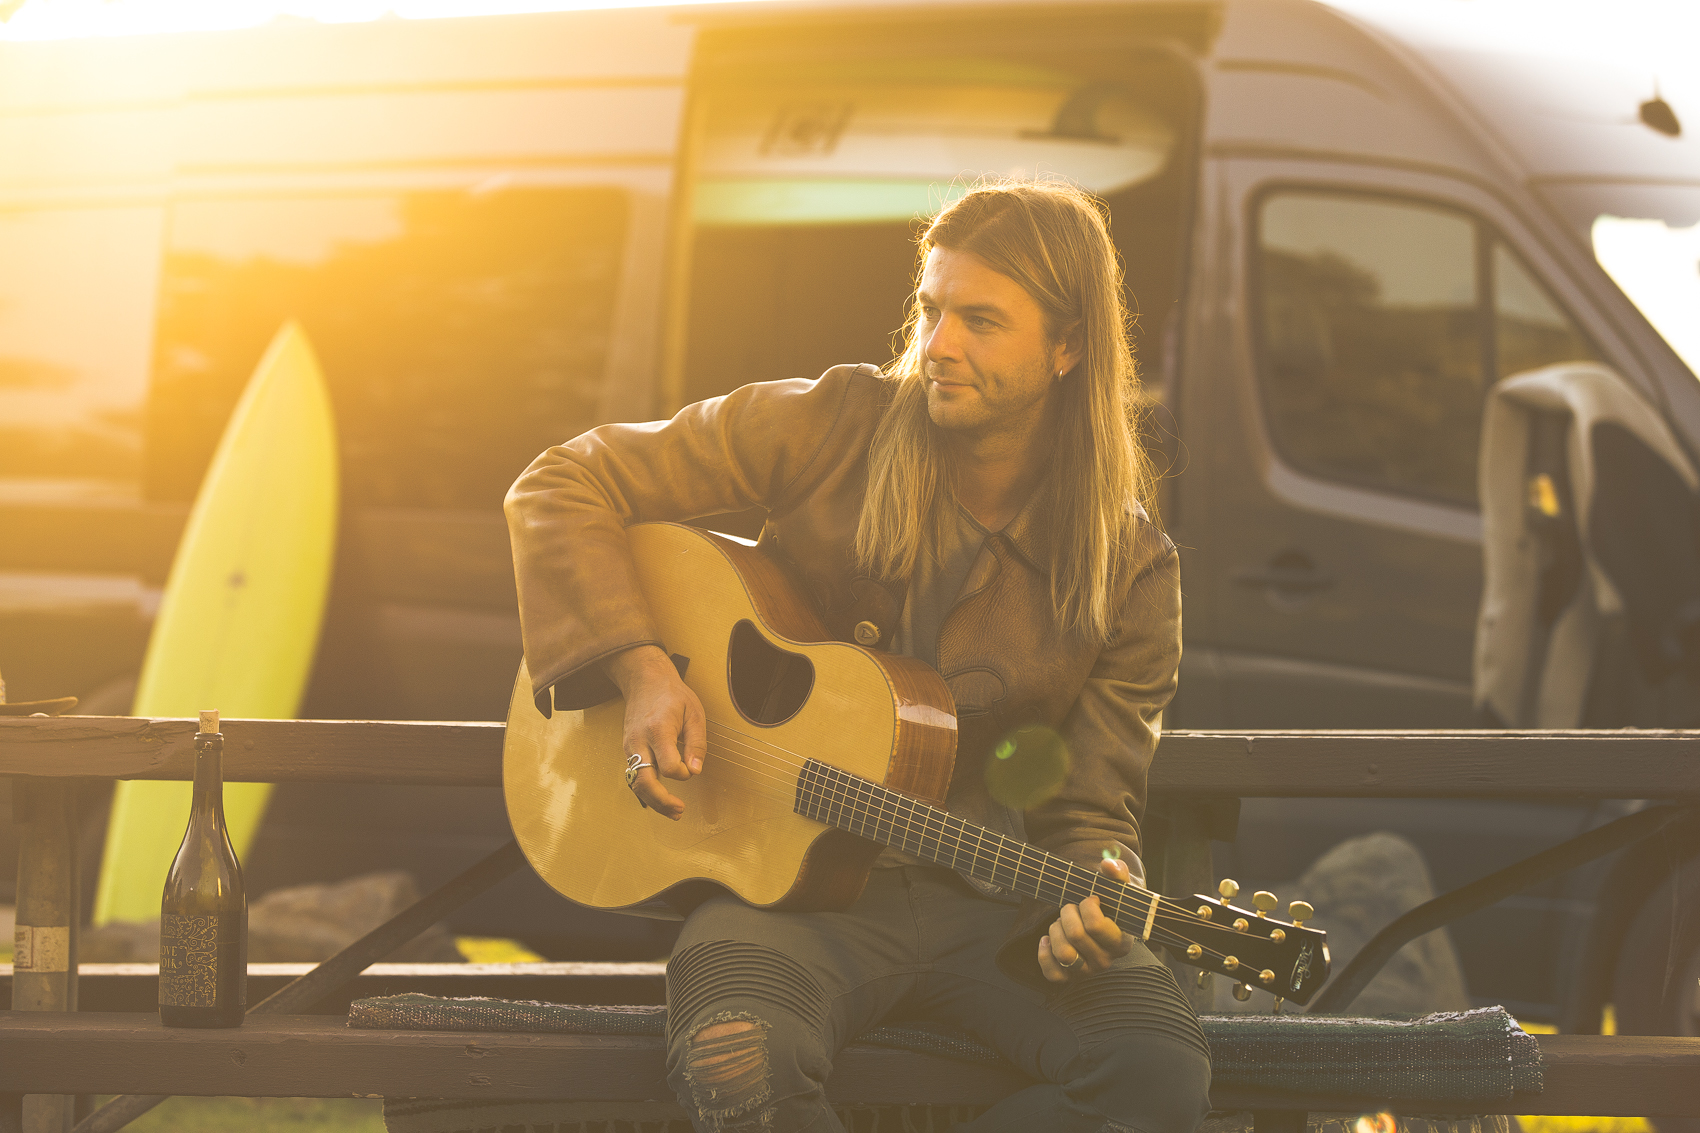 An evening with keith harkin at volcanic tickets volcanic theater an evening with keith harkin at volcanic tickets volcanic theater pub bend or mon sep 25 2017 at 8pm bend ticket m4hsunfo